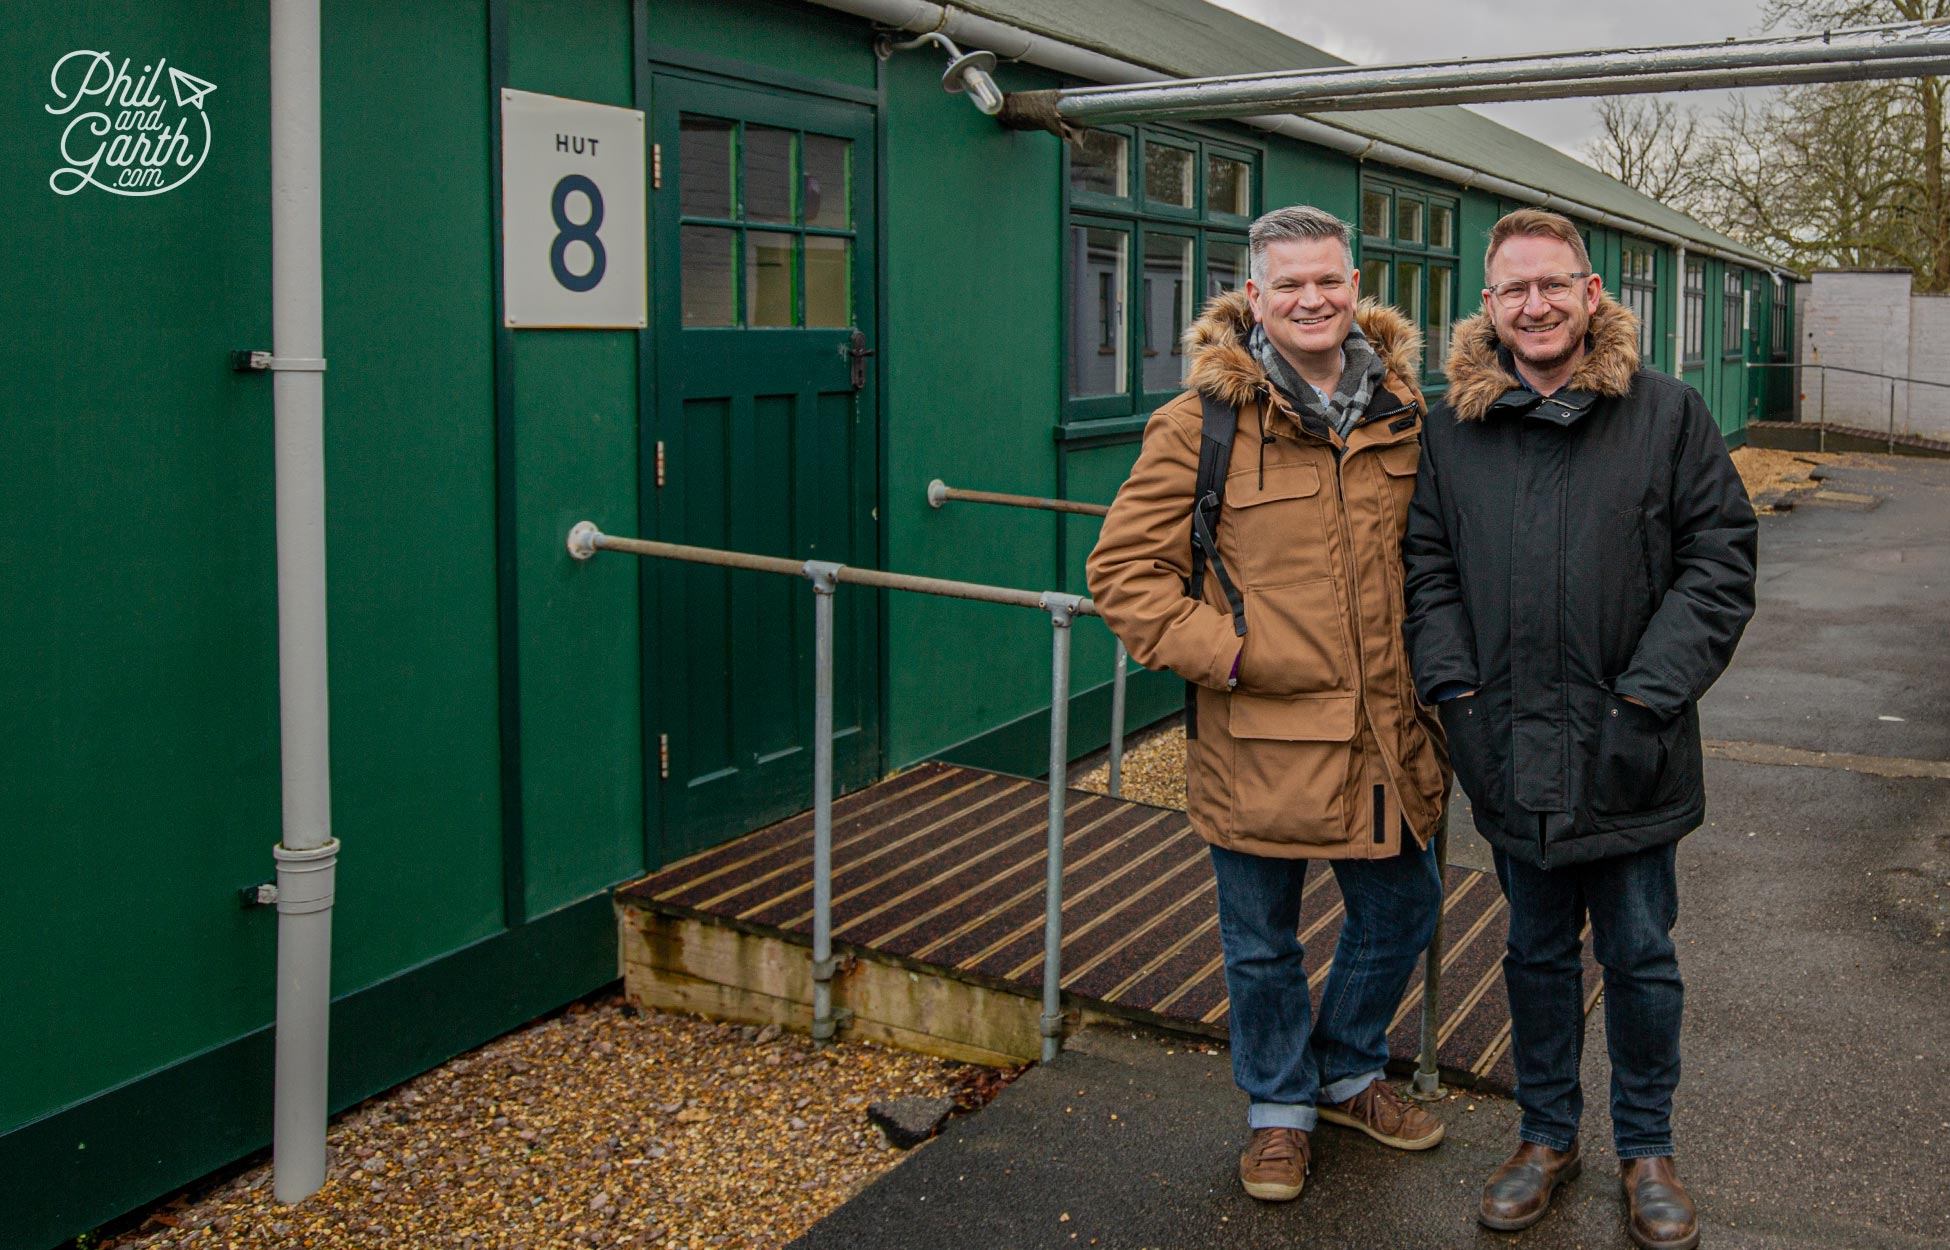 Phil and Garth outside Hut 8 where Alan Turing had his office